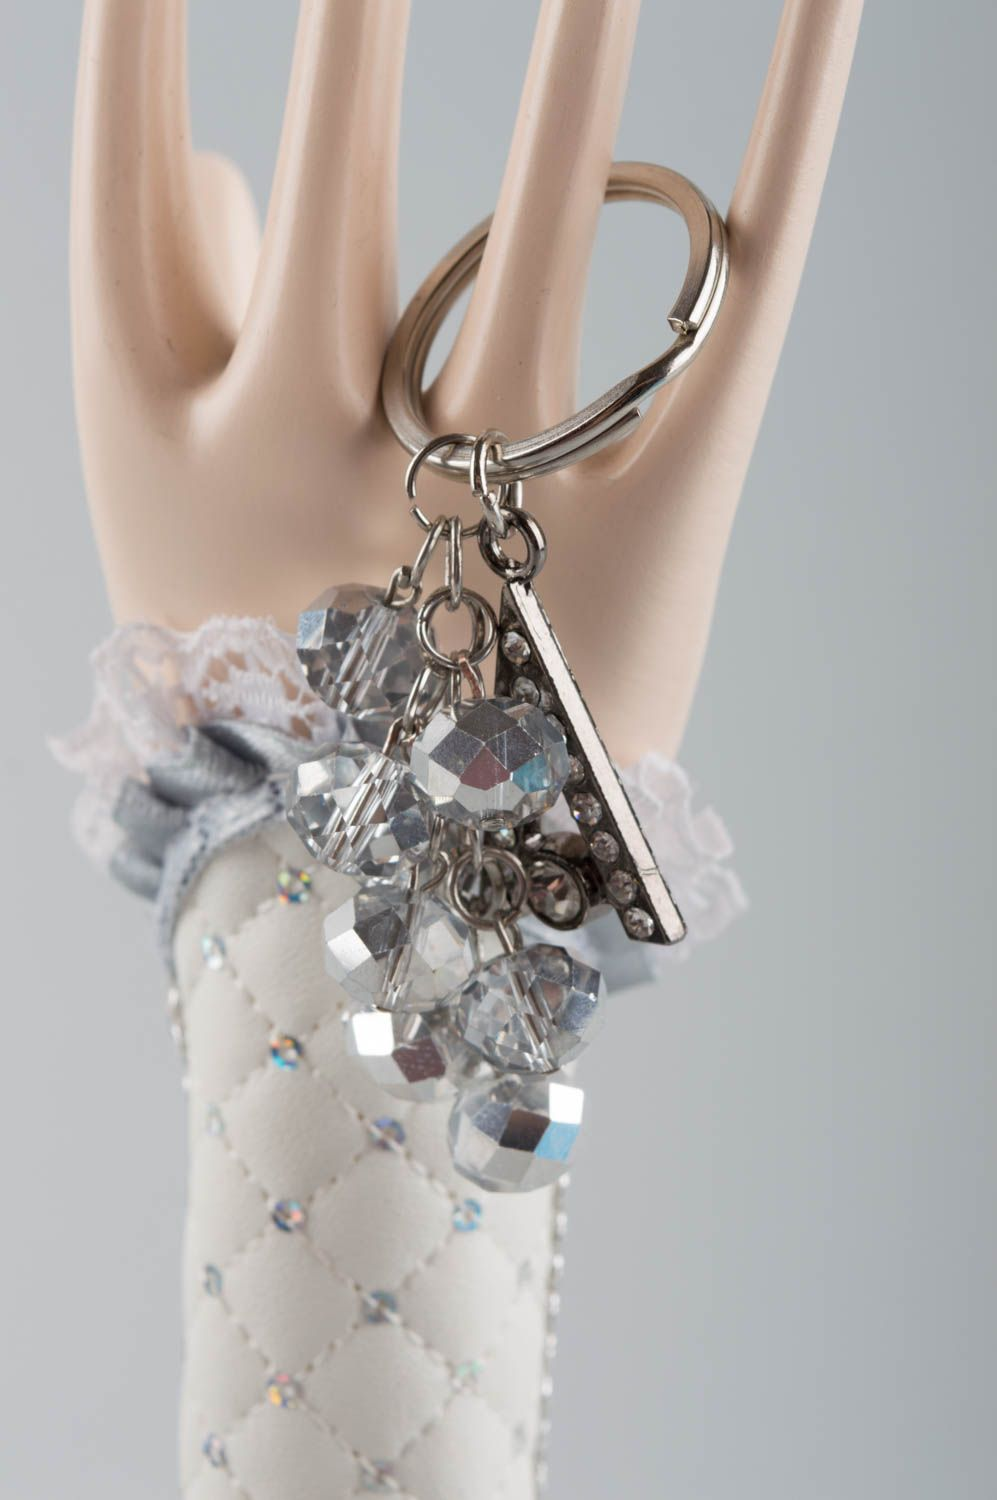 Handmade cute metal keychain made of glass beads with strasses for girls